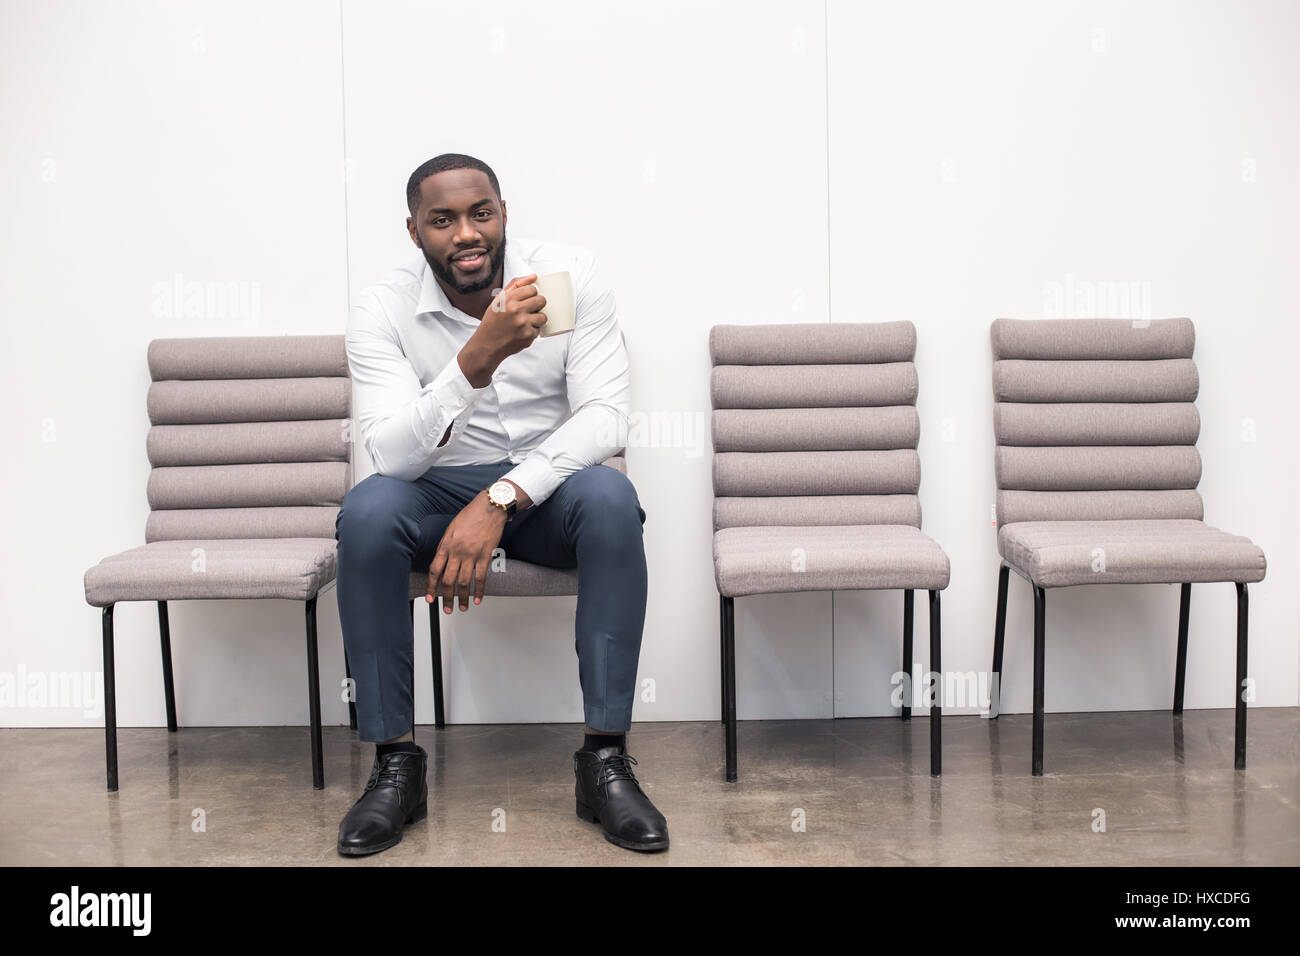 Man Waiting for Interview Job Application Concept - Stock Image